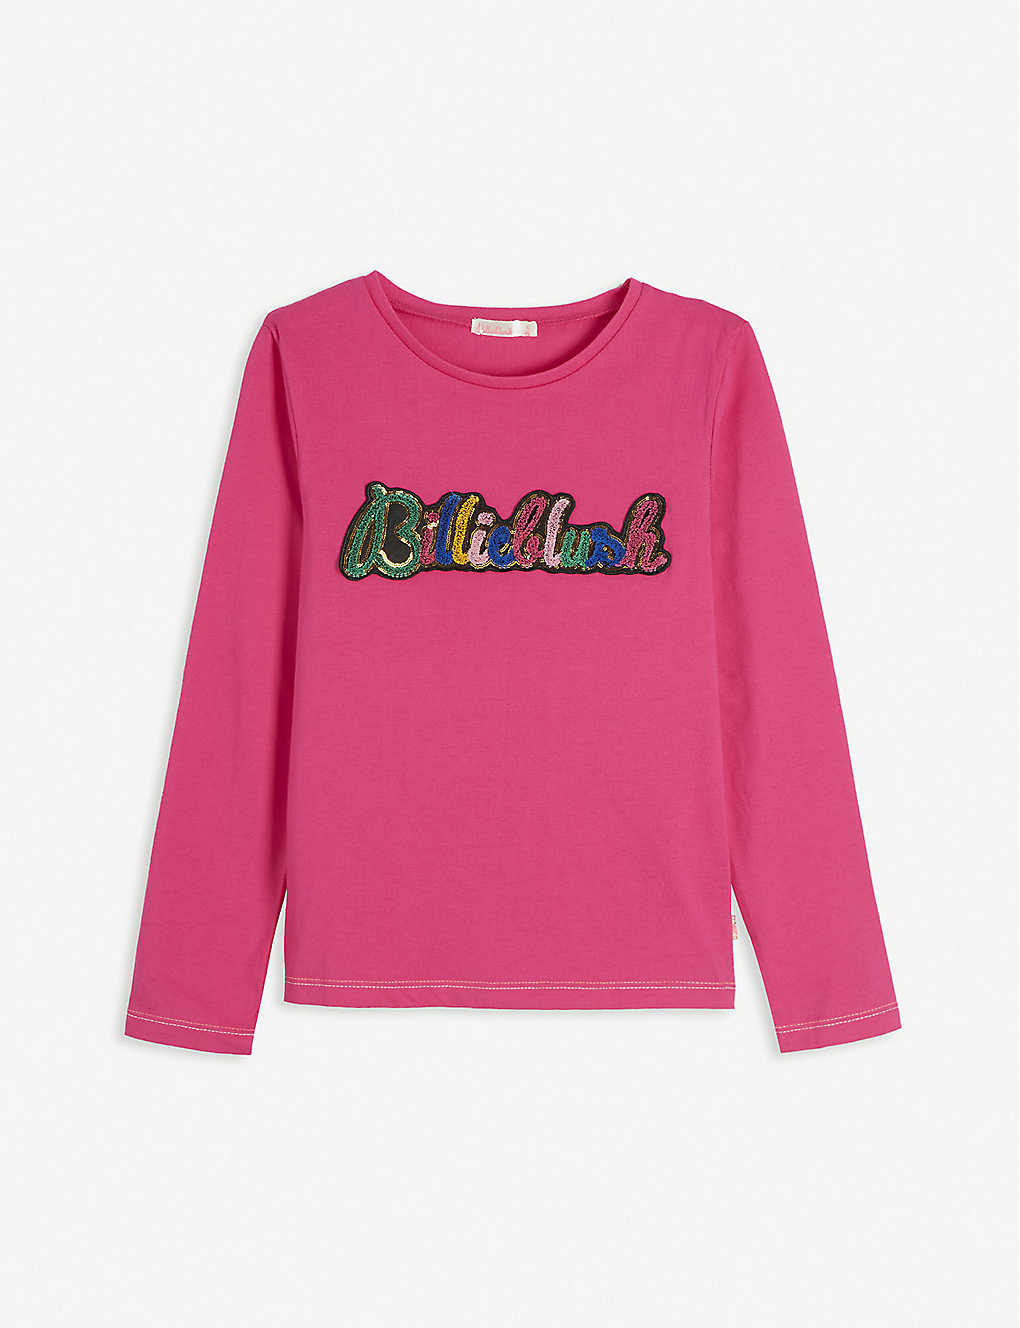 BILLIE BLUSH: Sequin long sleeve cotton T-Shirt 4-12 years